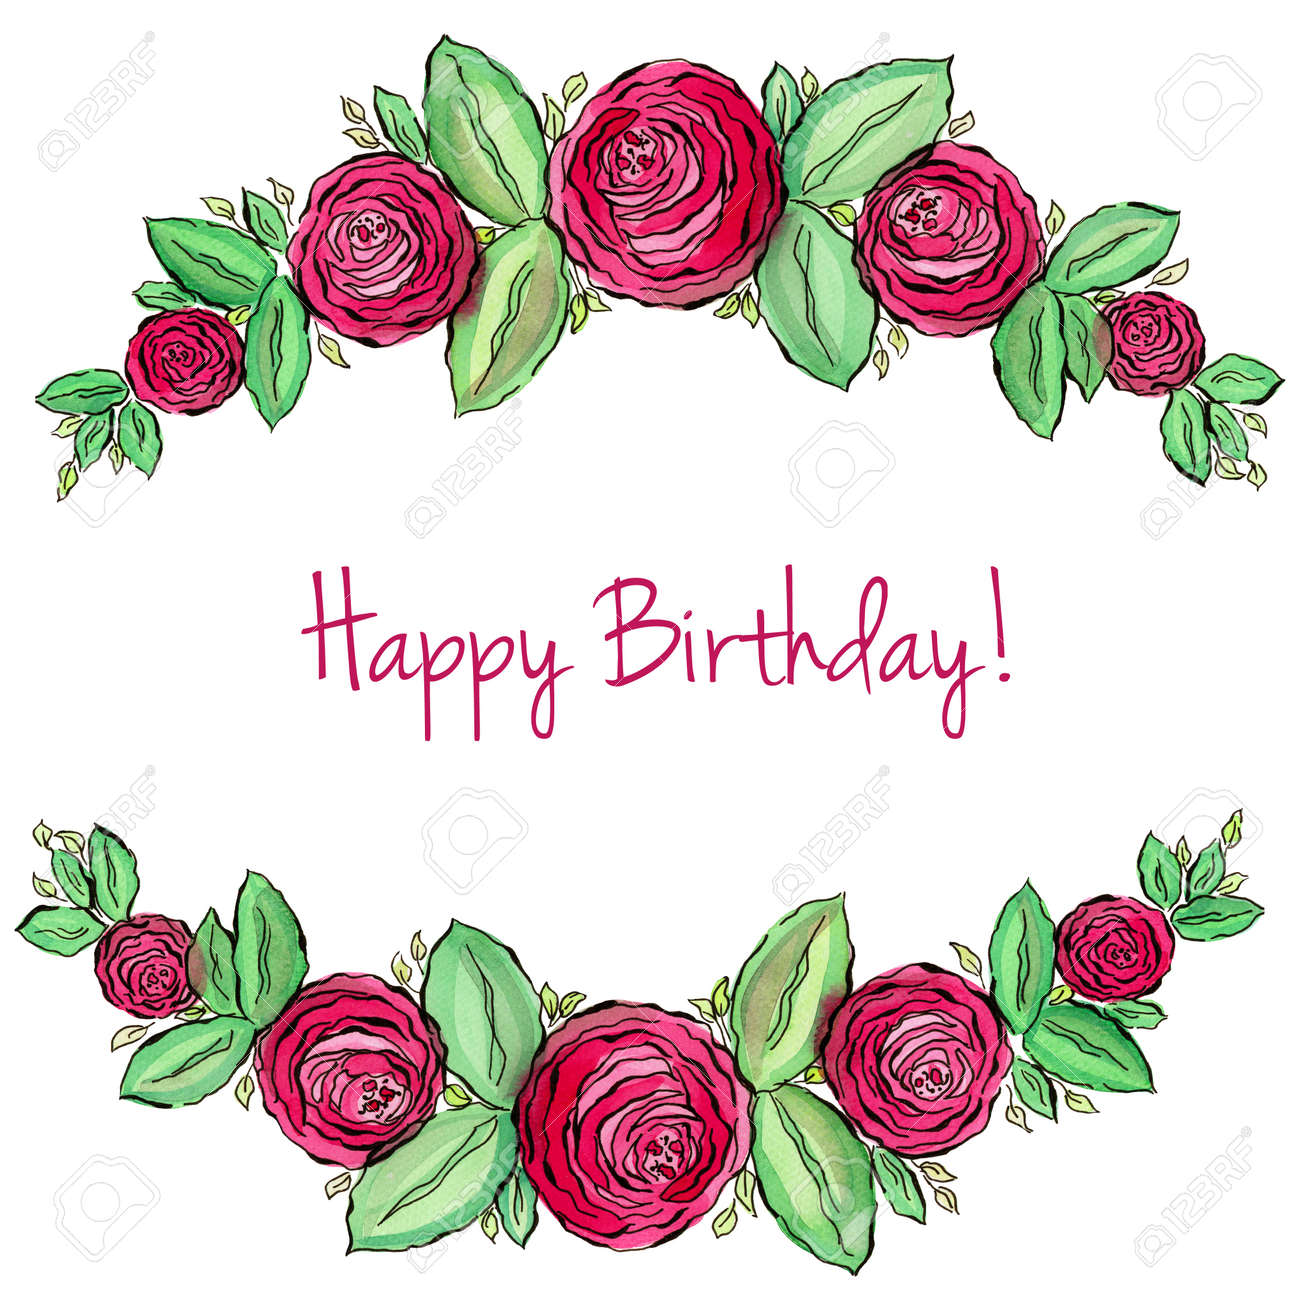 Beautiful Watercolor Corner Frame Roses Happy Birthday Greetings